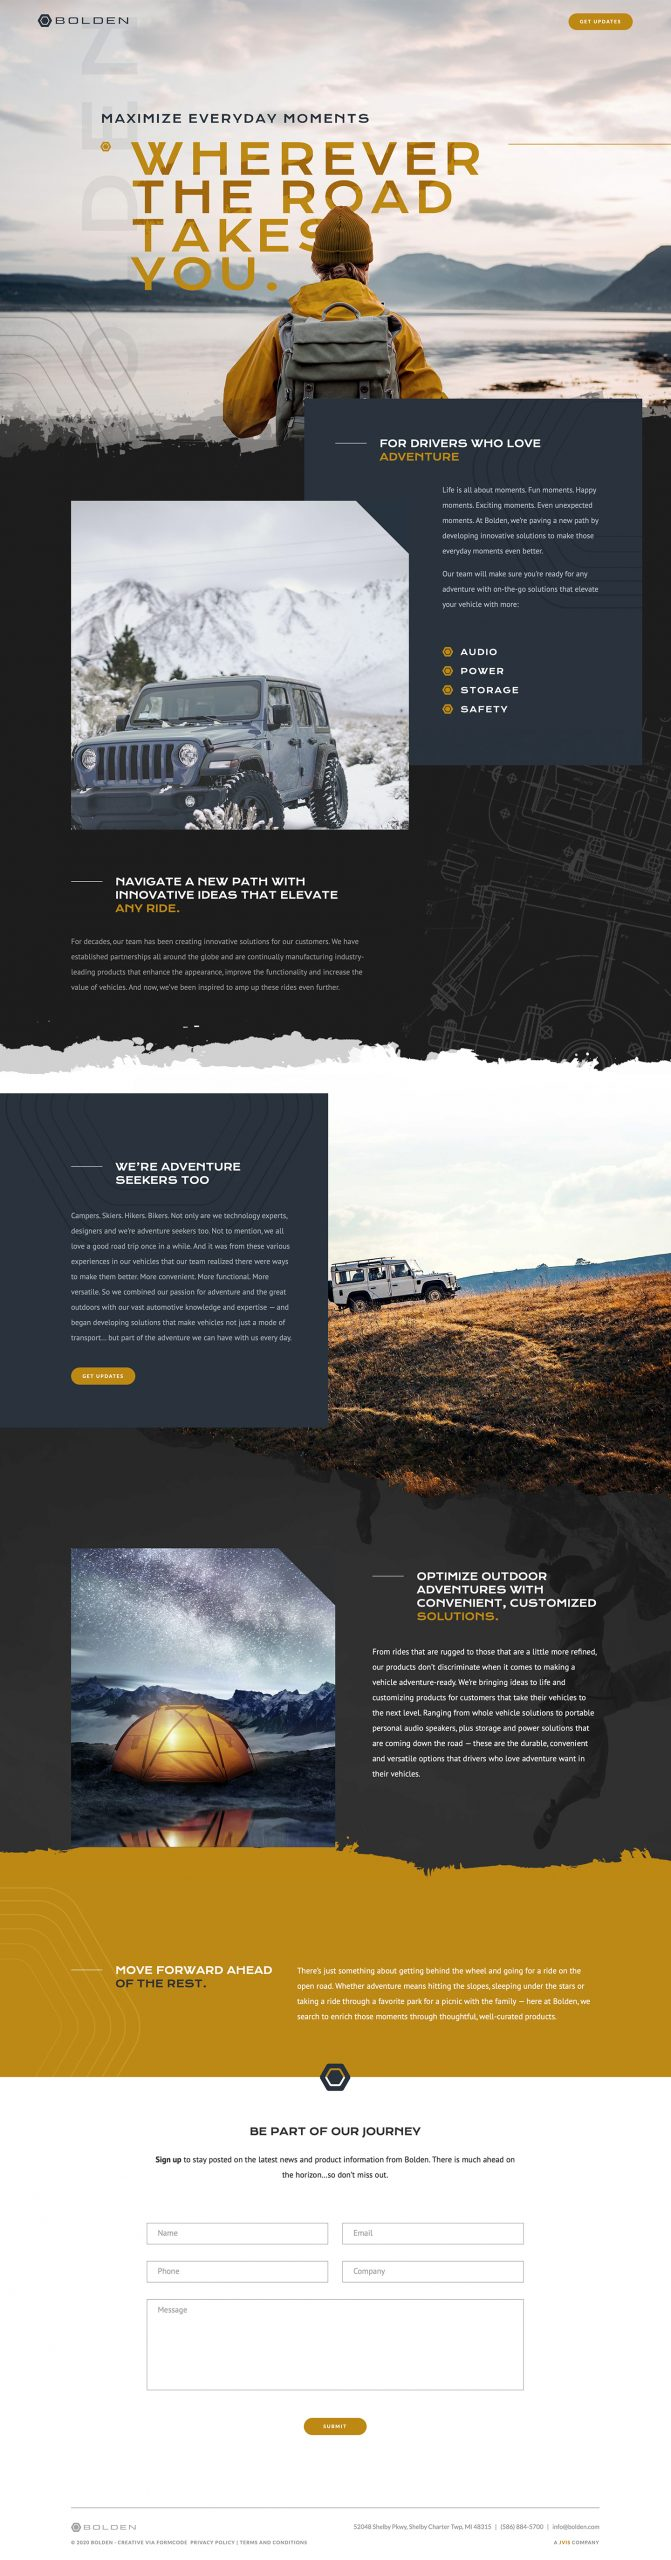 Bolden - Automotive Electronics Website Homepage